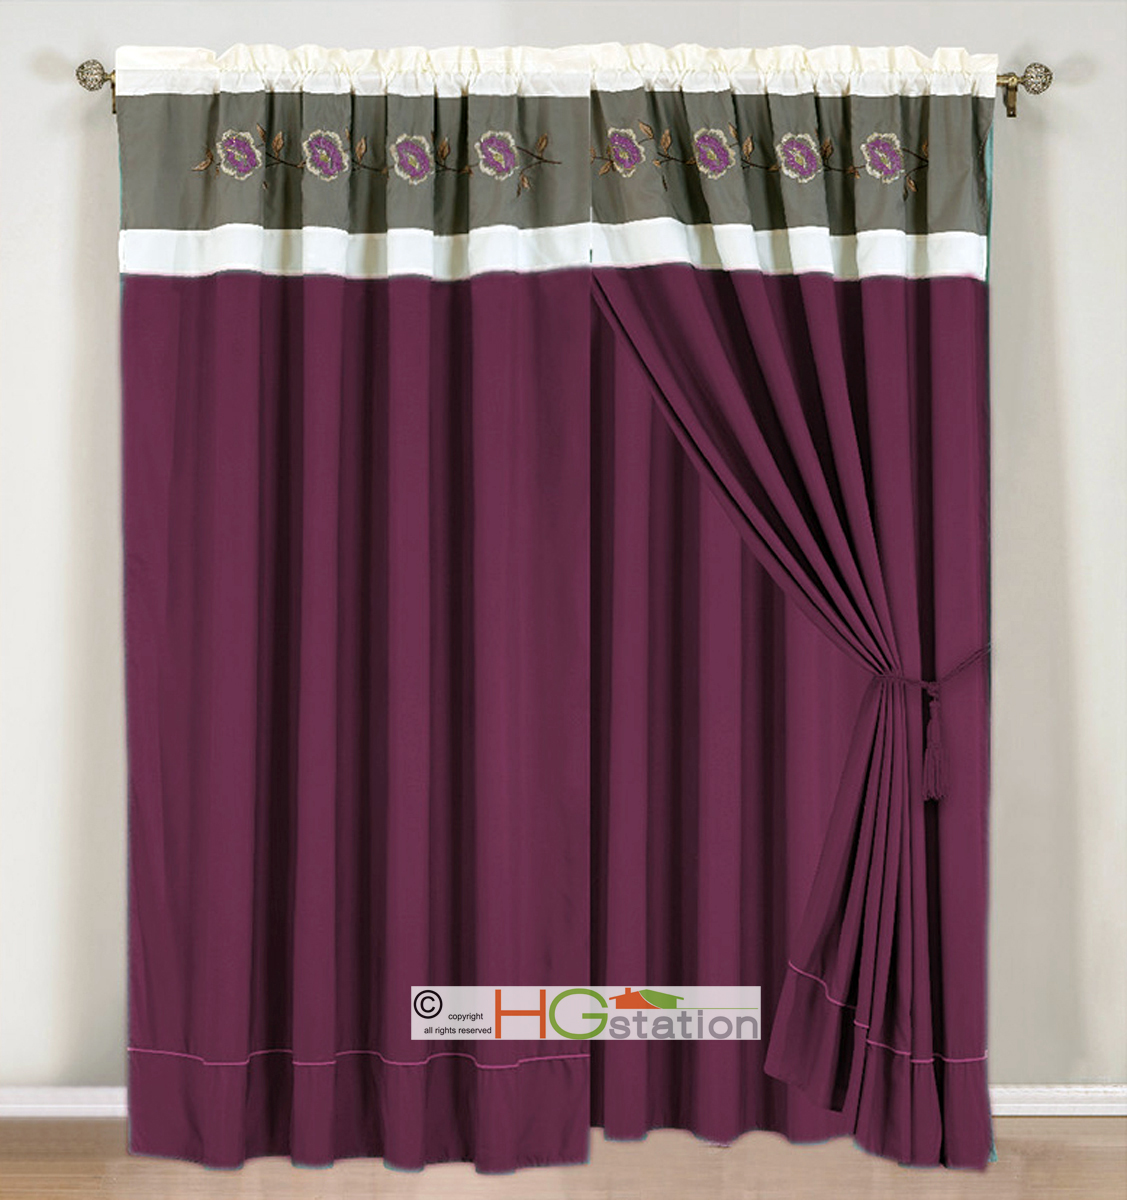 4p Embroidery Floral Striped Curtain Set Plum Purple Lavender Gray Valance Drape Ebay